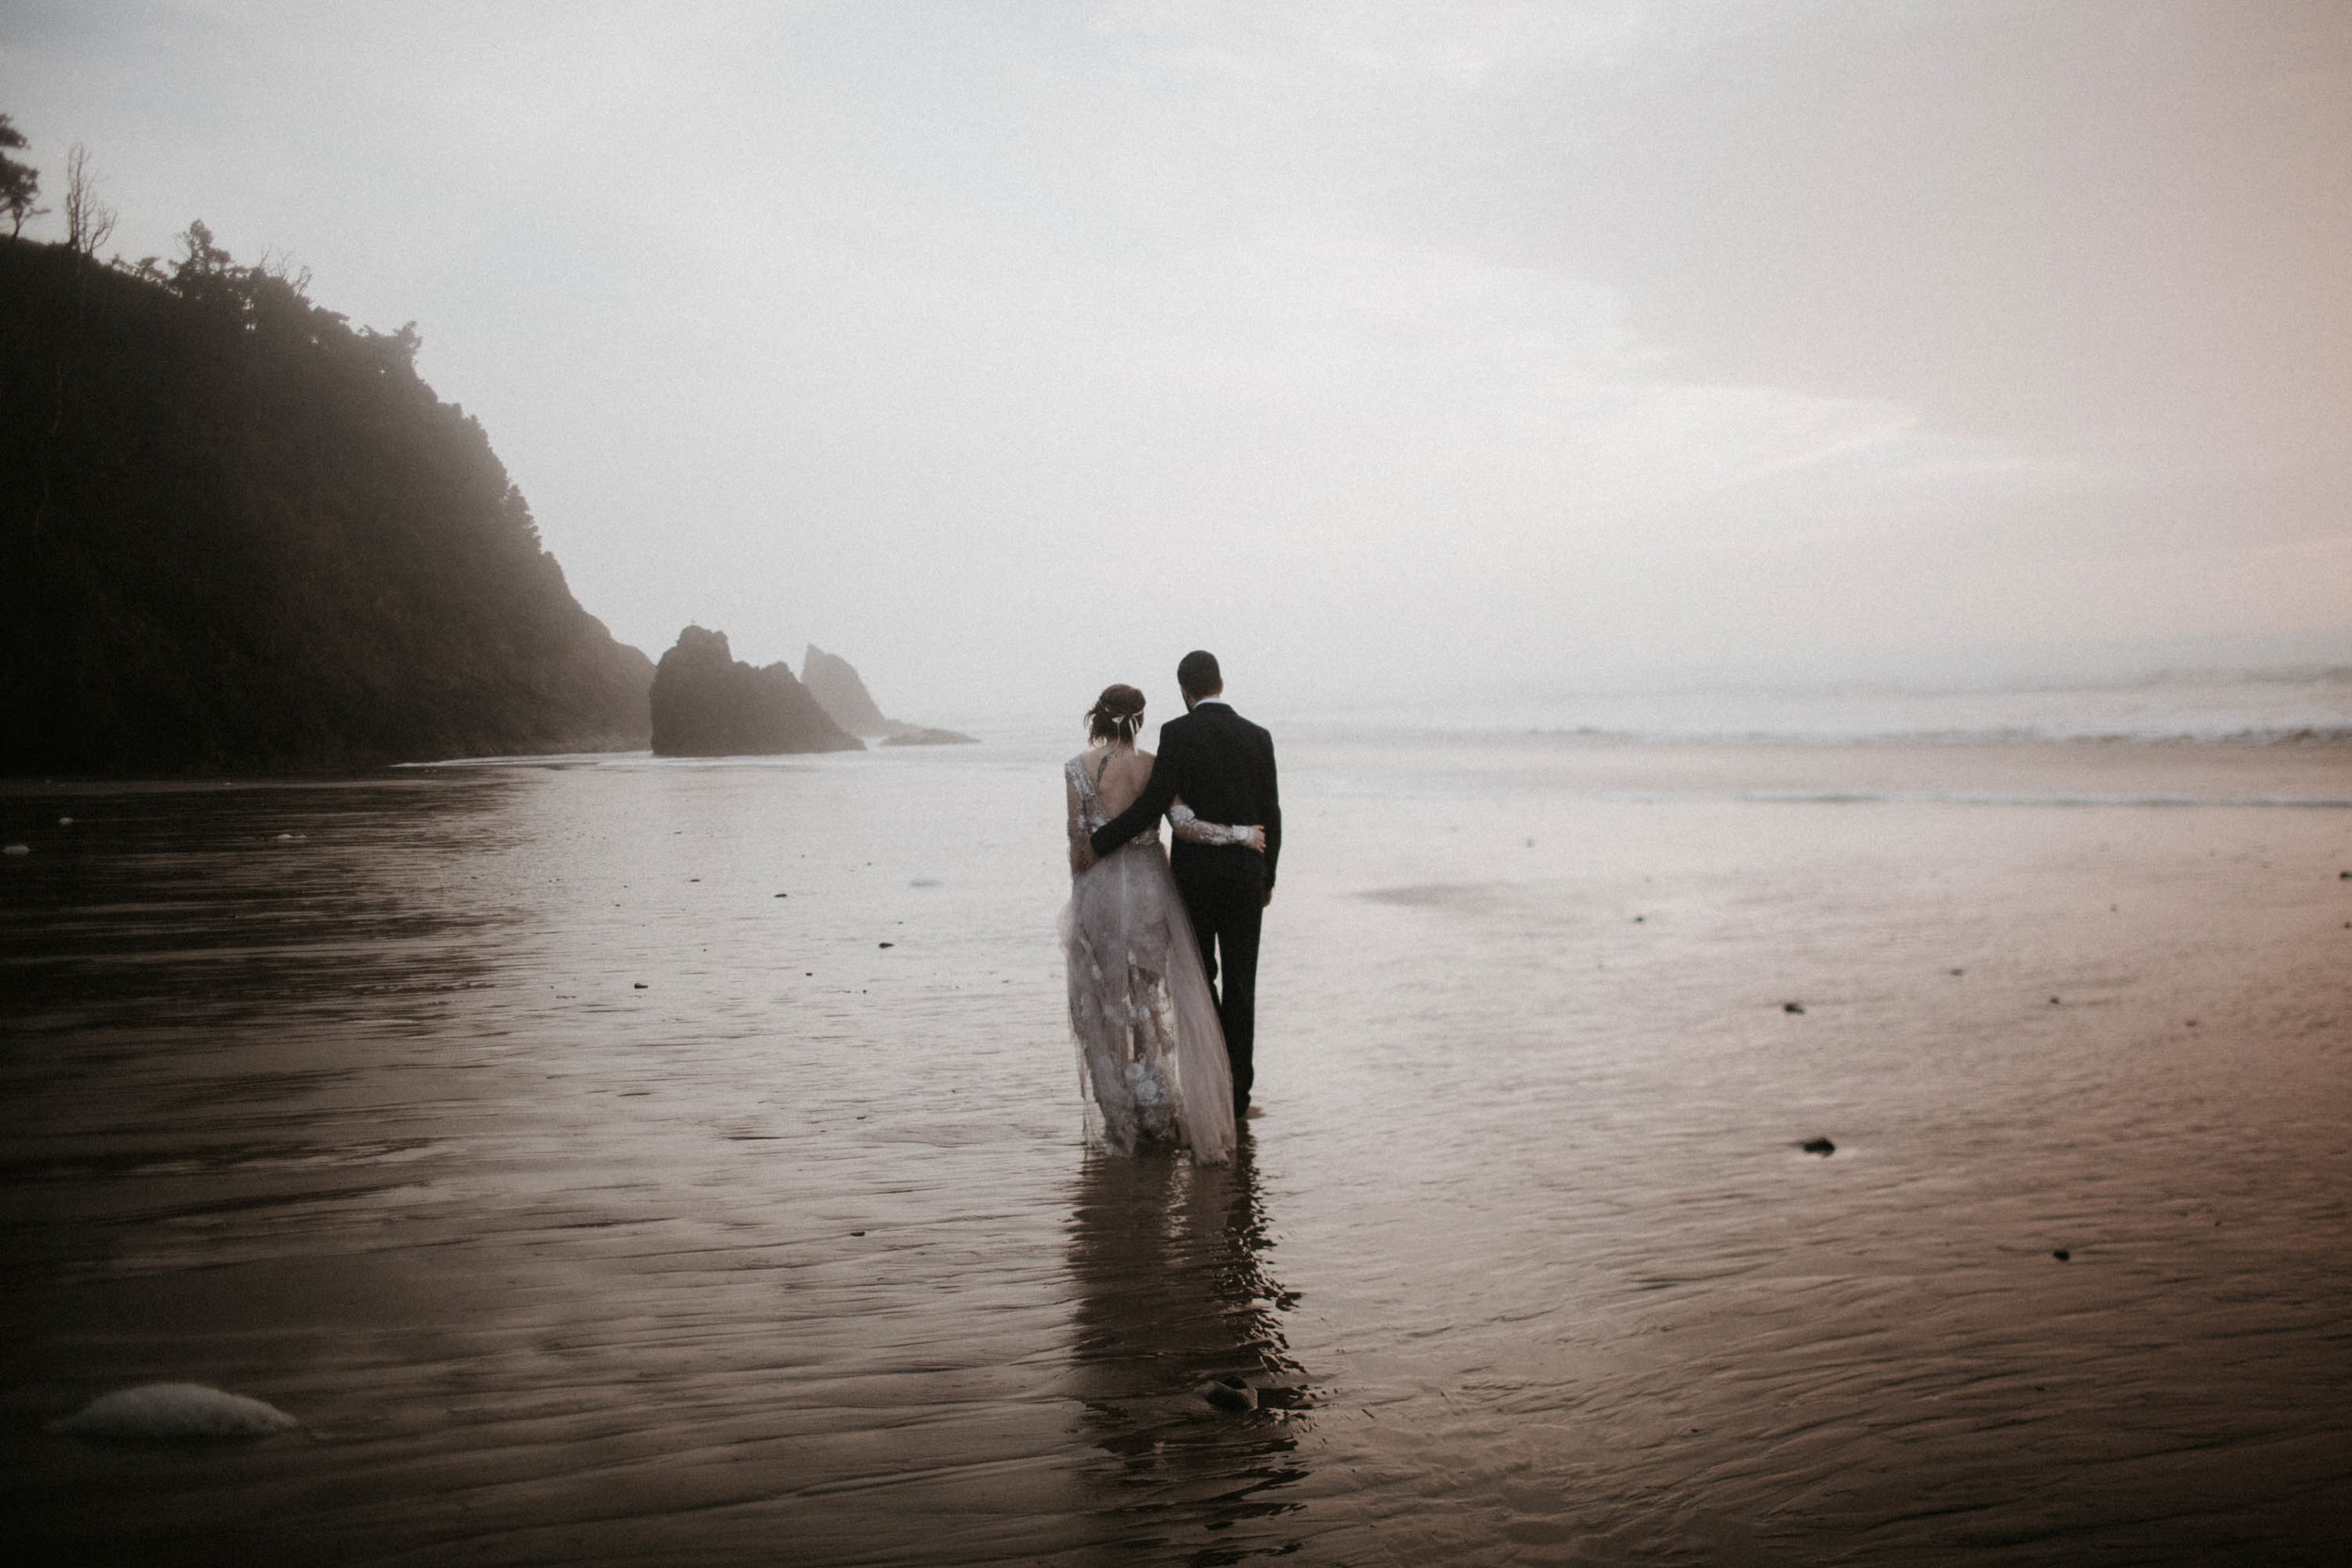 canonbeach_elopment_weddingphotographer-75.jpg